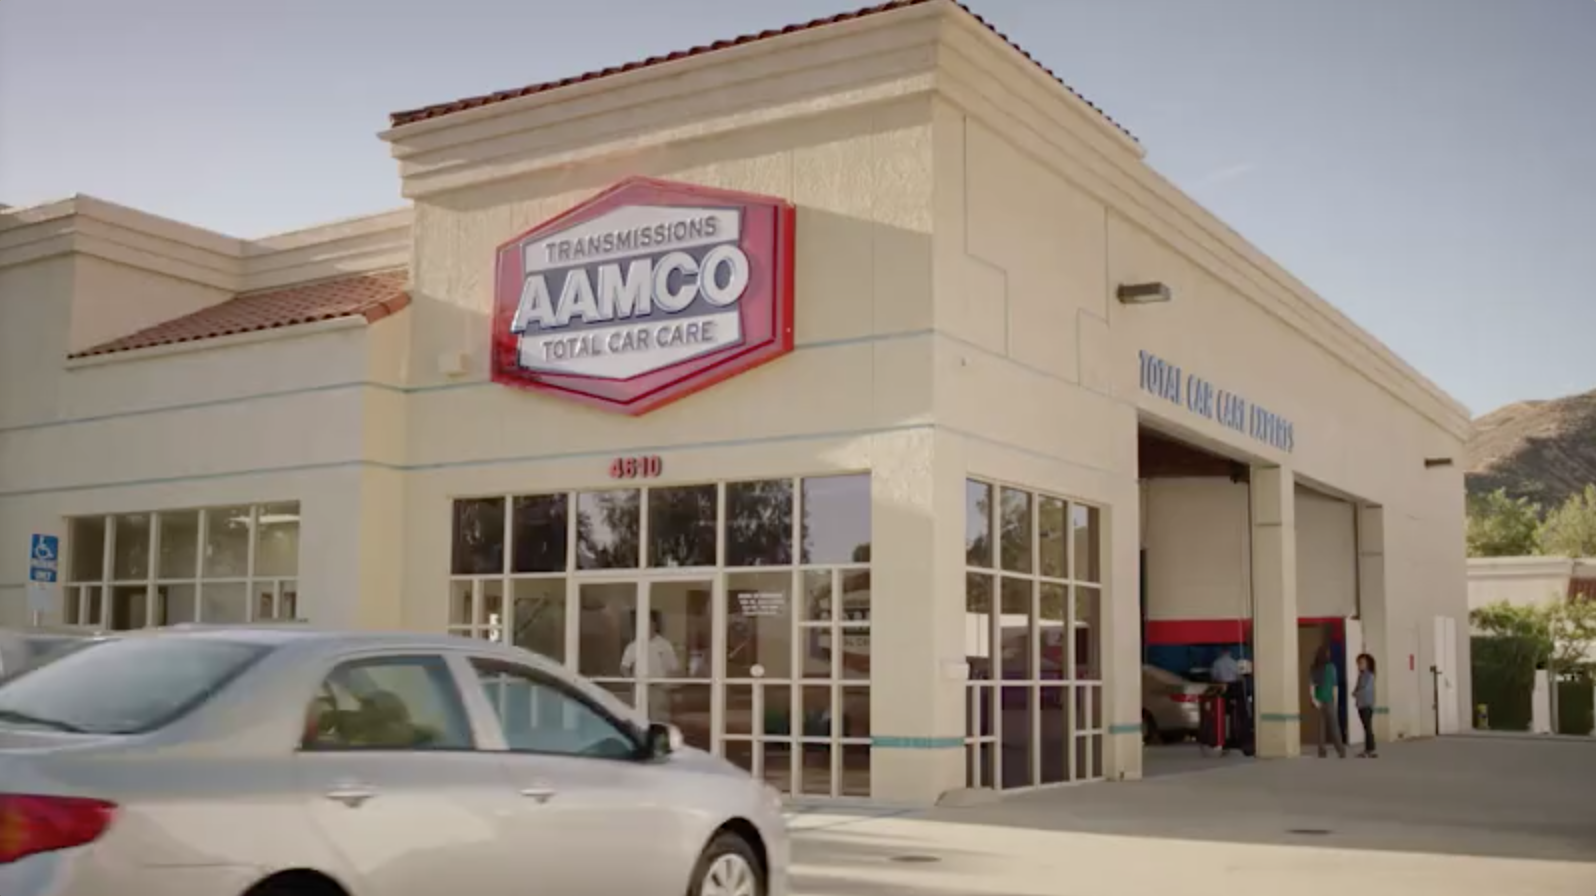 Transmission shop & Total Car Care | AAMCO